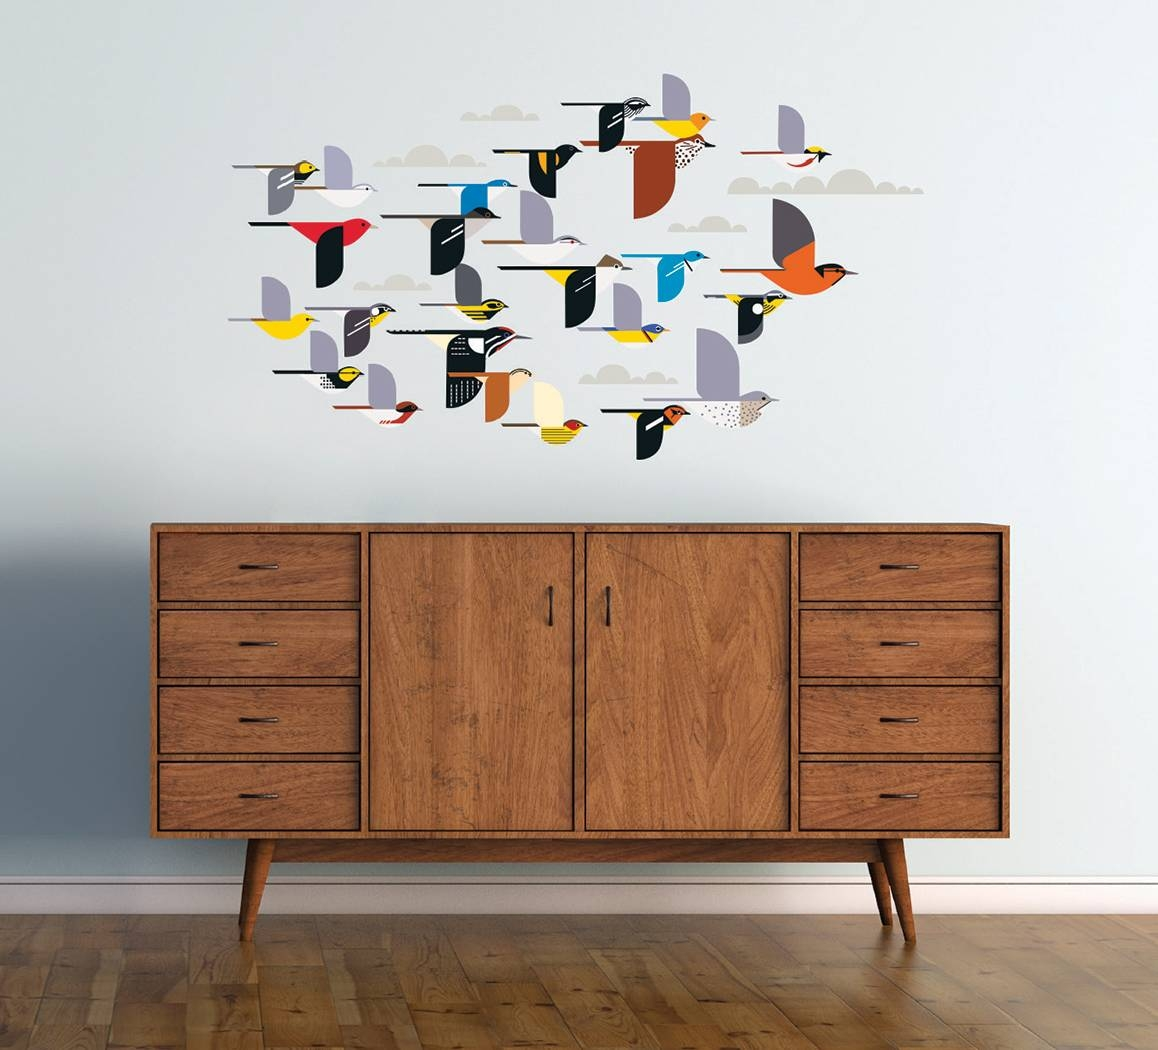 Charley Harper: A Flock Of Birds Wall Décor For Recent Flock Of Birds Wall Art (View 9 of 25)